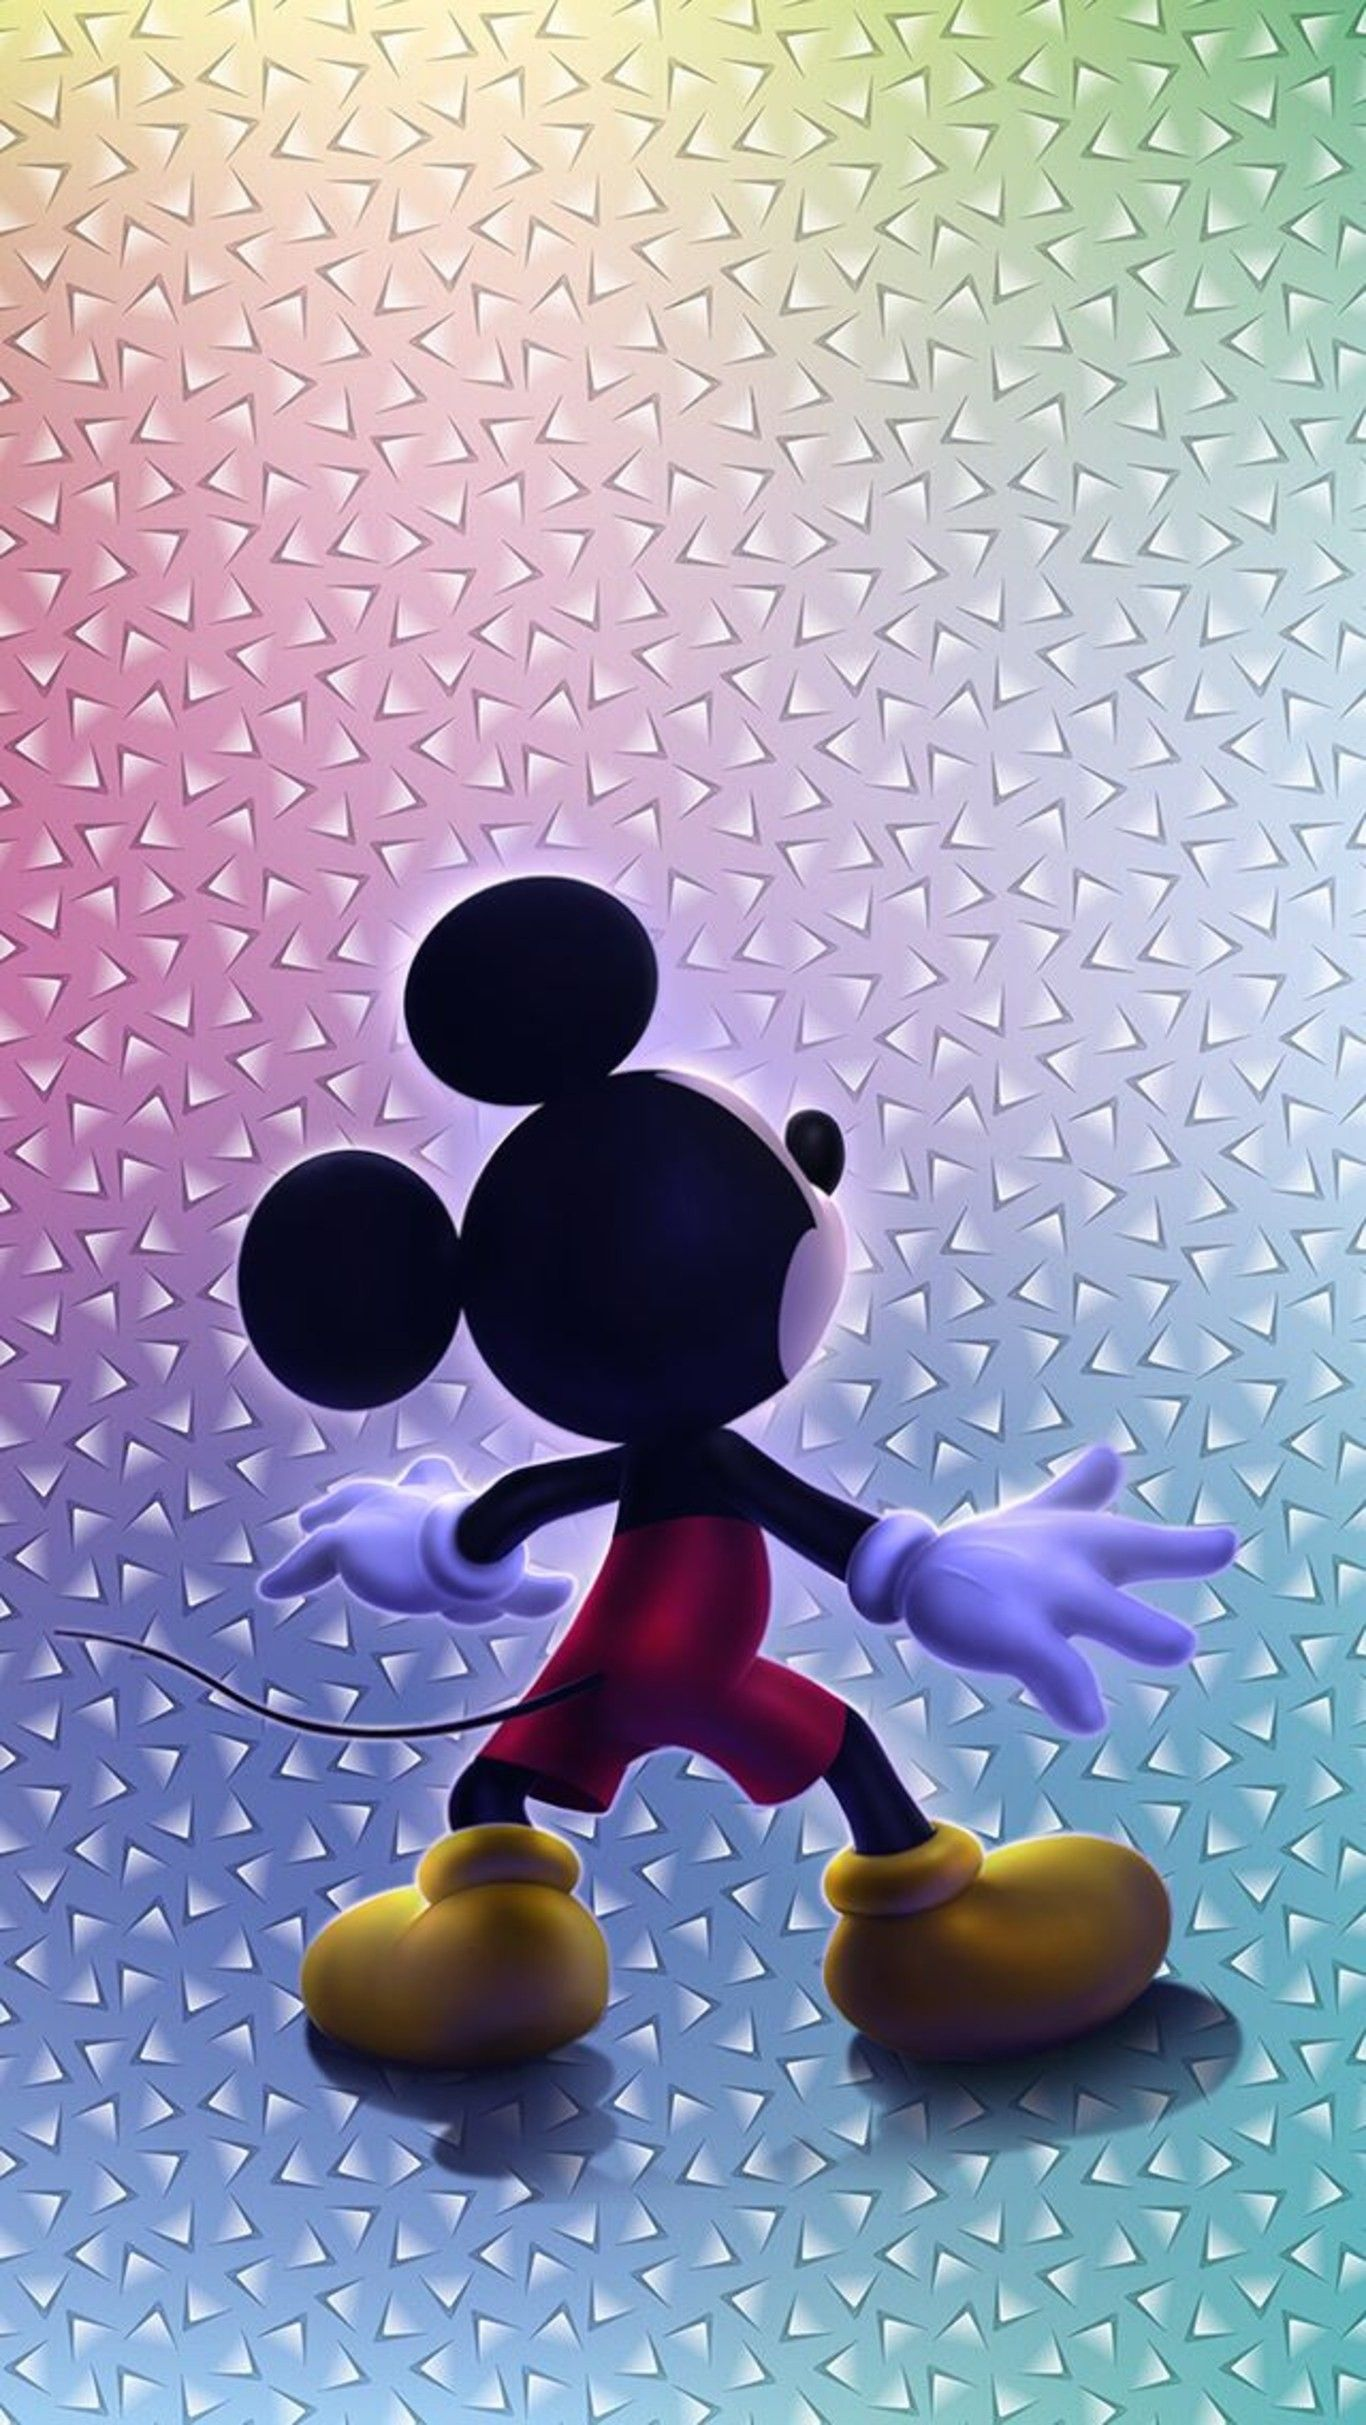 Pin by Lorrie Lovett on disney in 2020 (With images